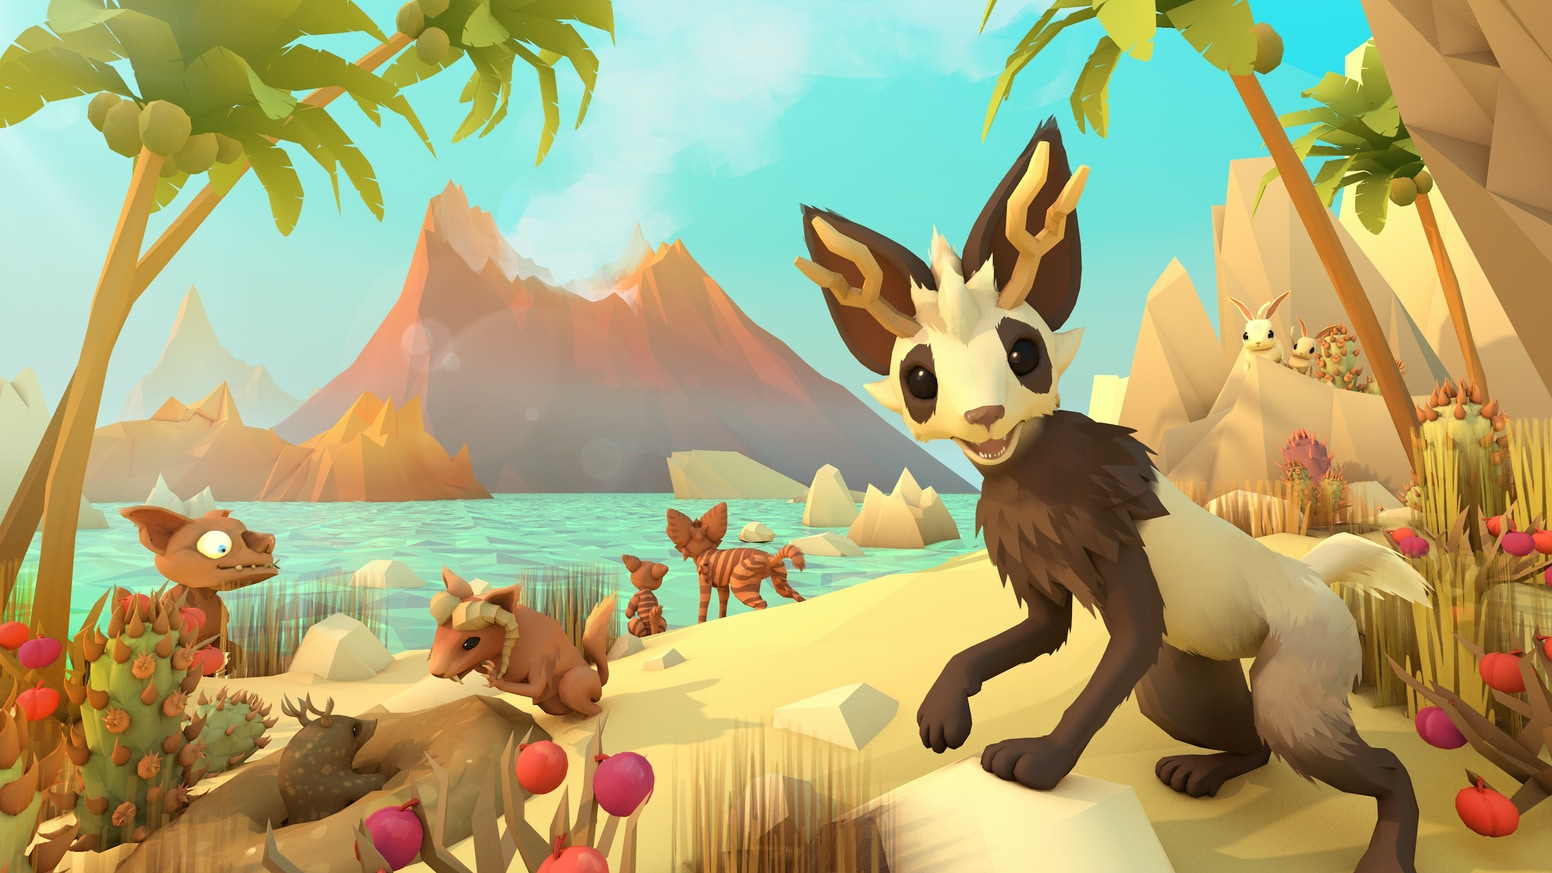 Niche is a simulation/strategy game about population genetics. Breed your animals and evolve your own species, based on real genetics.